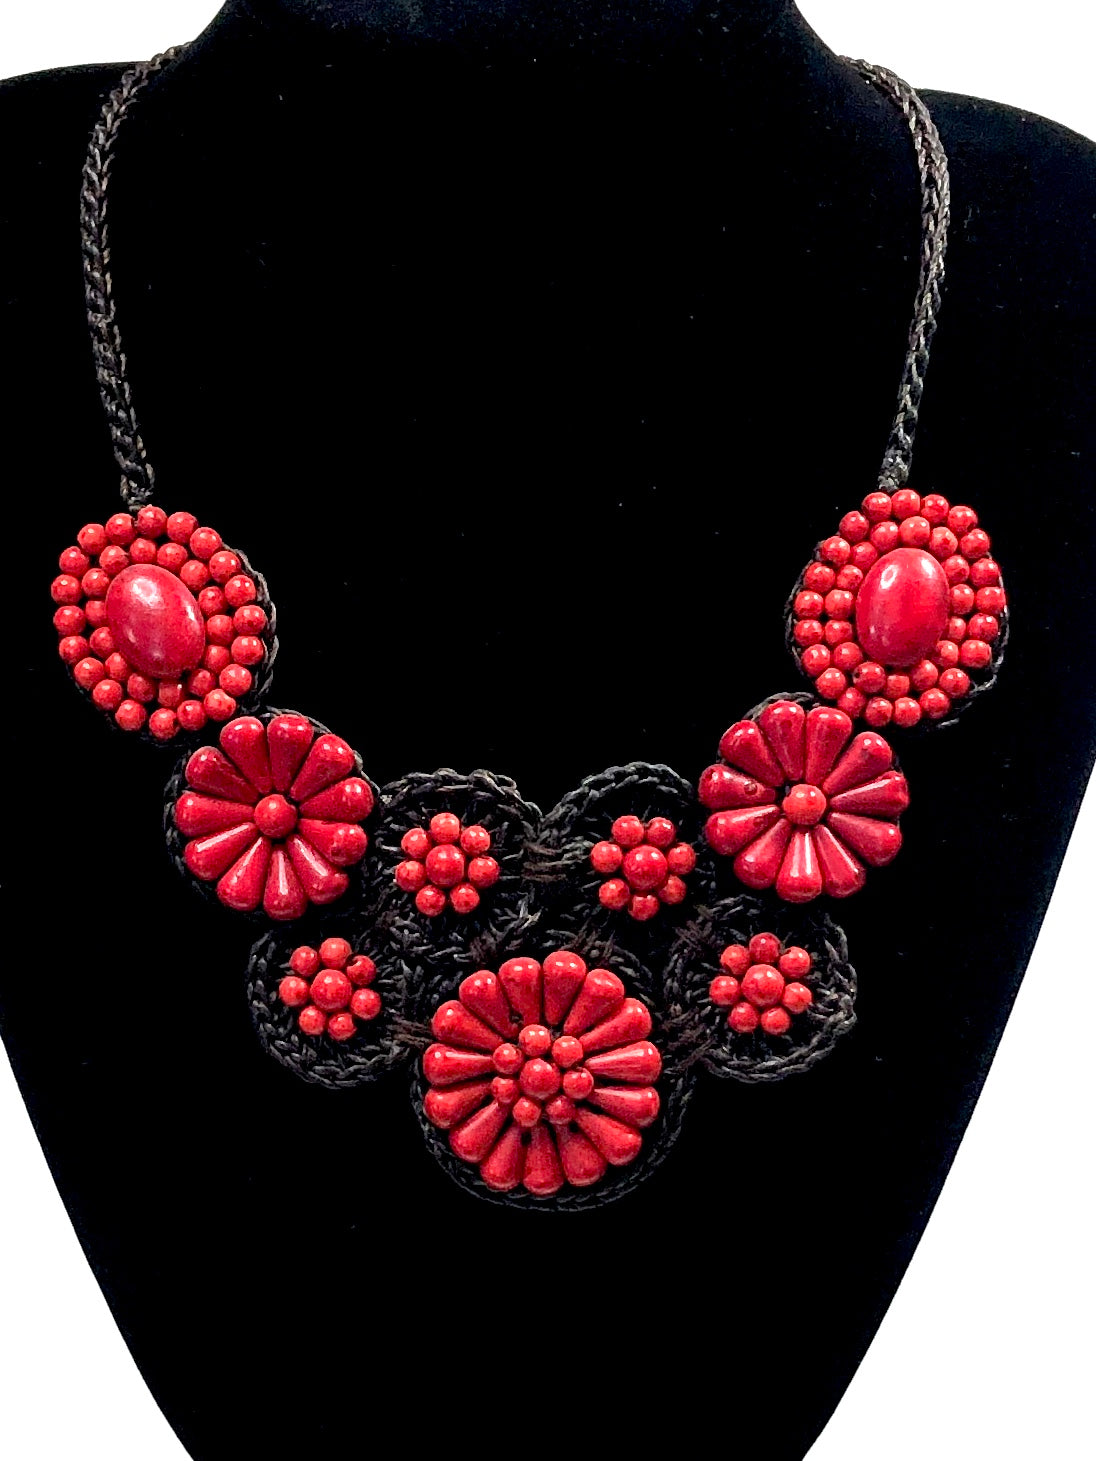 Boho Floral Necklace |2 colors|